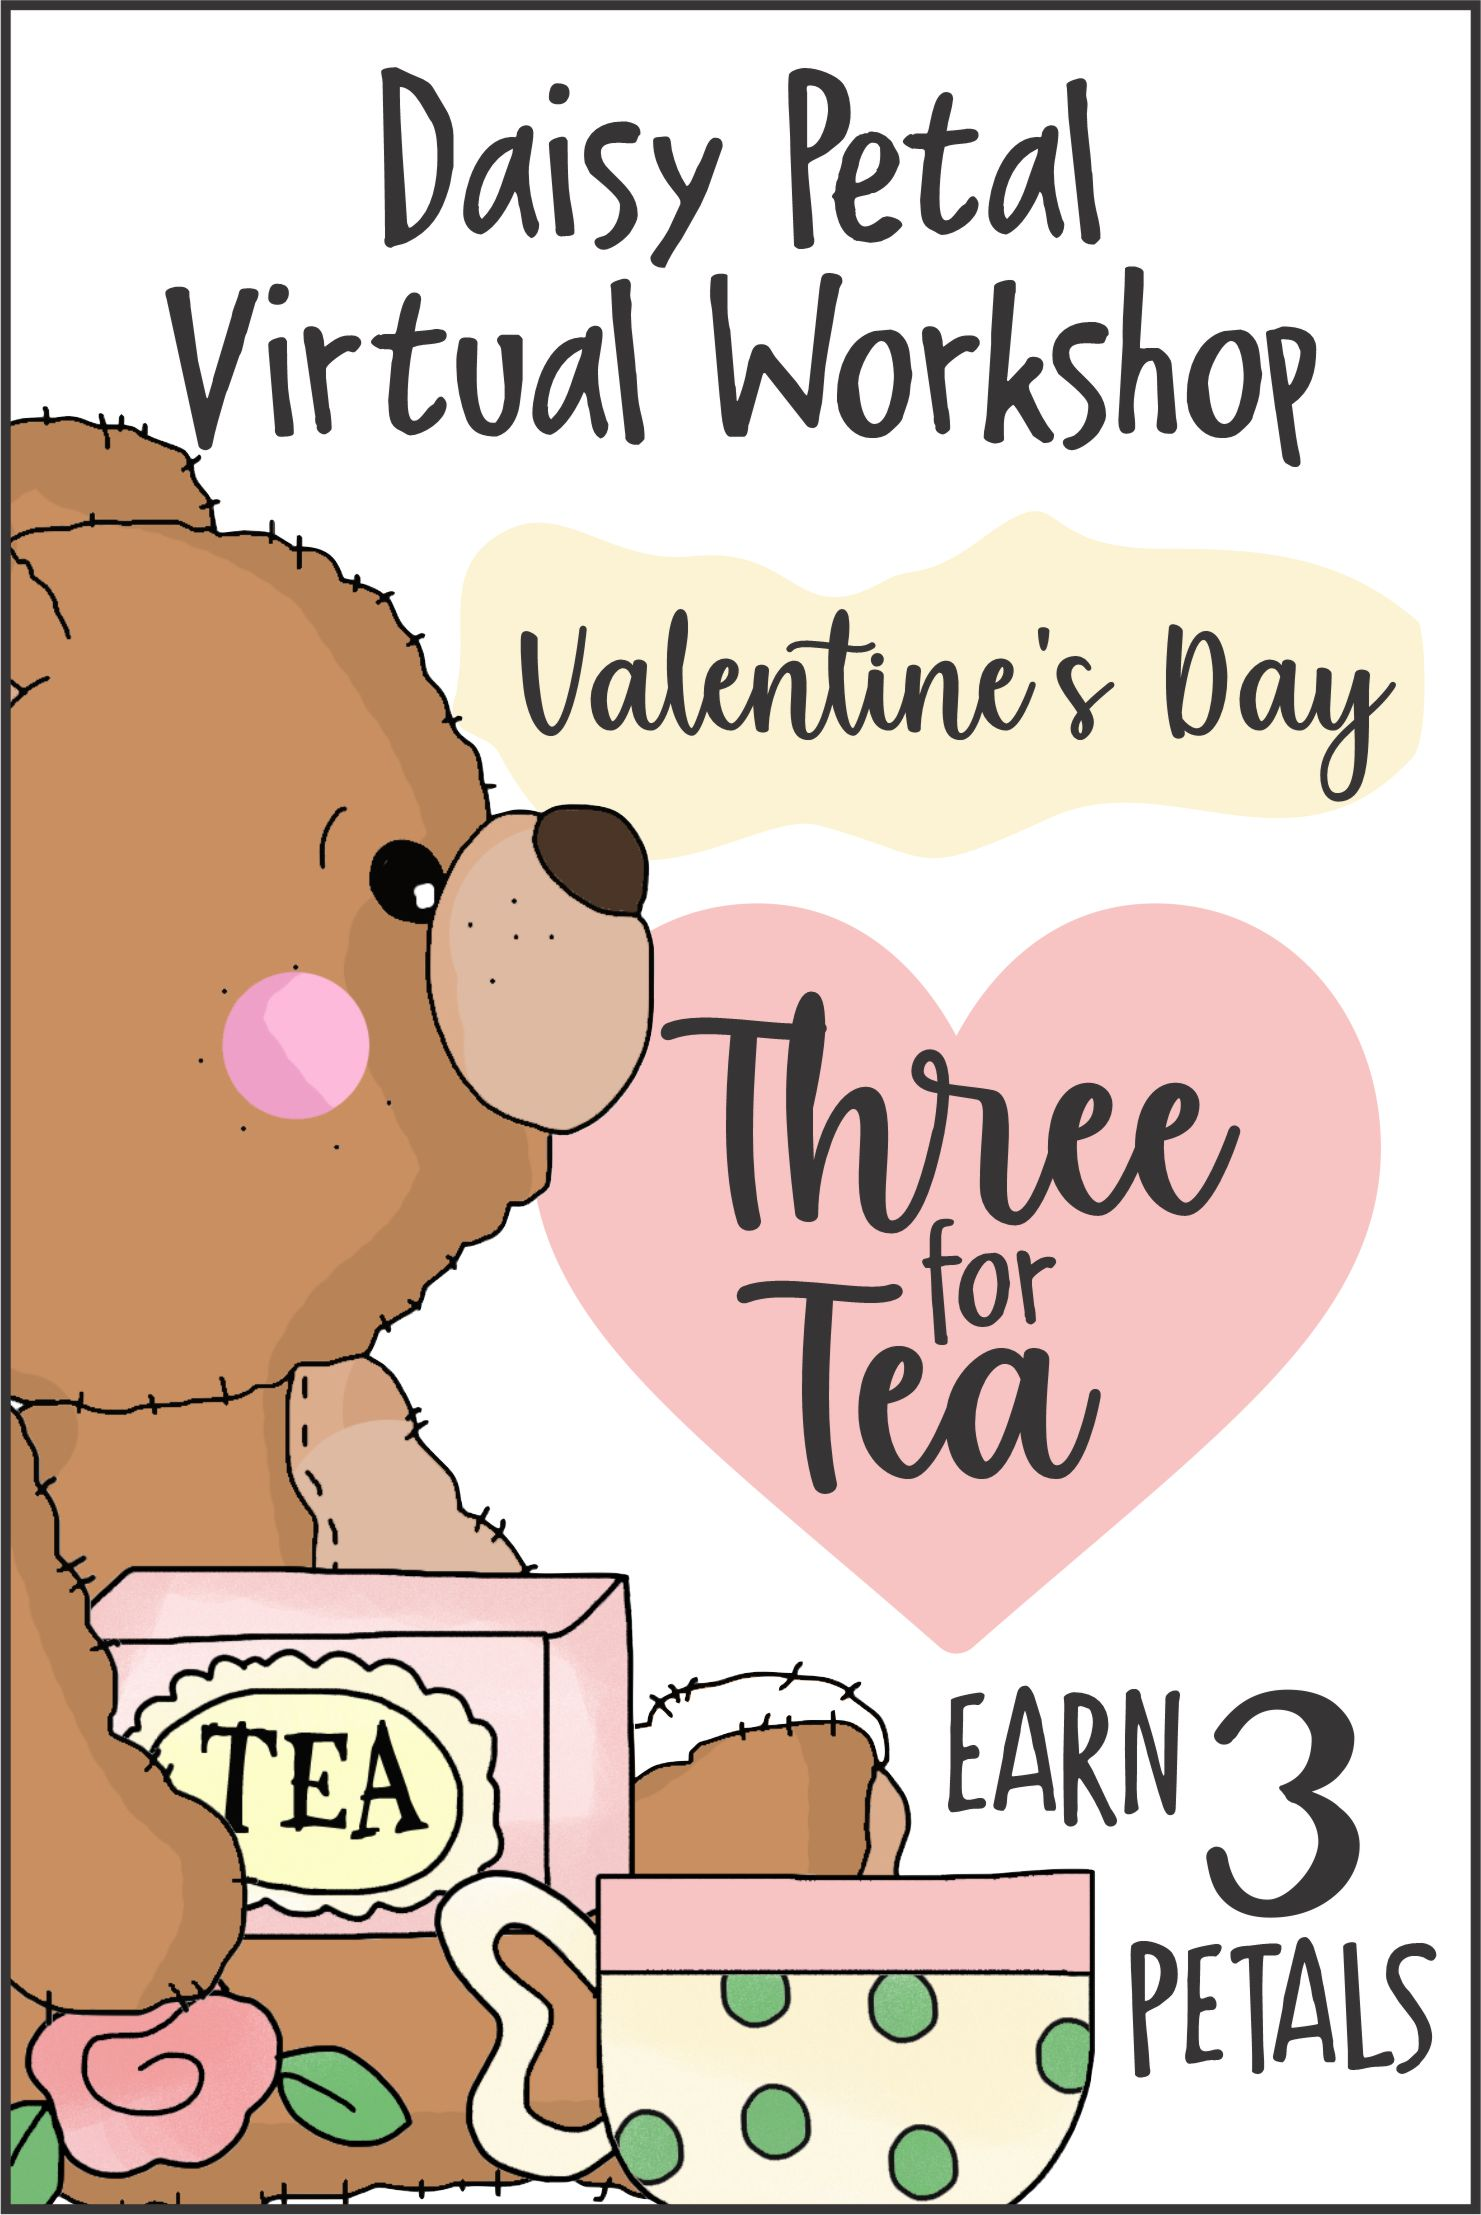 Join us dressed up or in red or pink with your special person and a favorite doll or stuffed animal! Earn 3 Daisy Petals! #makingfriends #teaparty #valentines #virtualvalentines #valentinesteaparty #dolls #tea #party #threefortea #daisypetals #daisies #girlscouts via @gsleader411